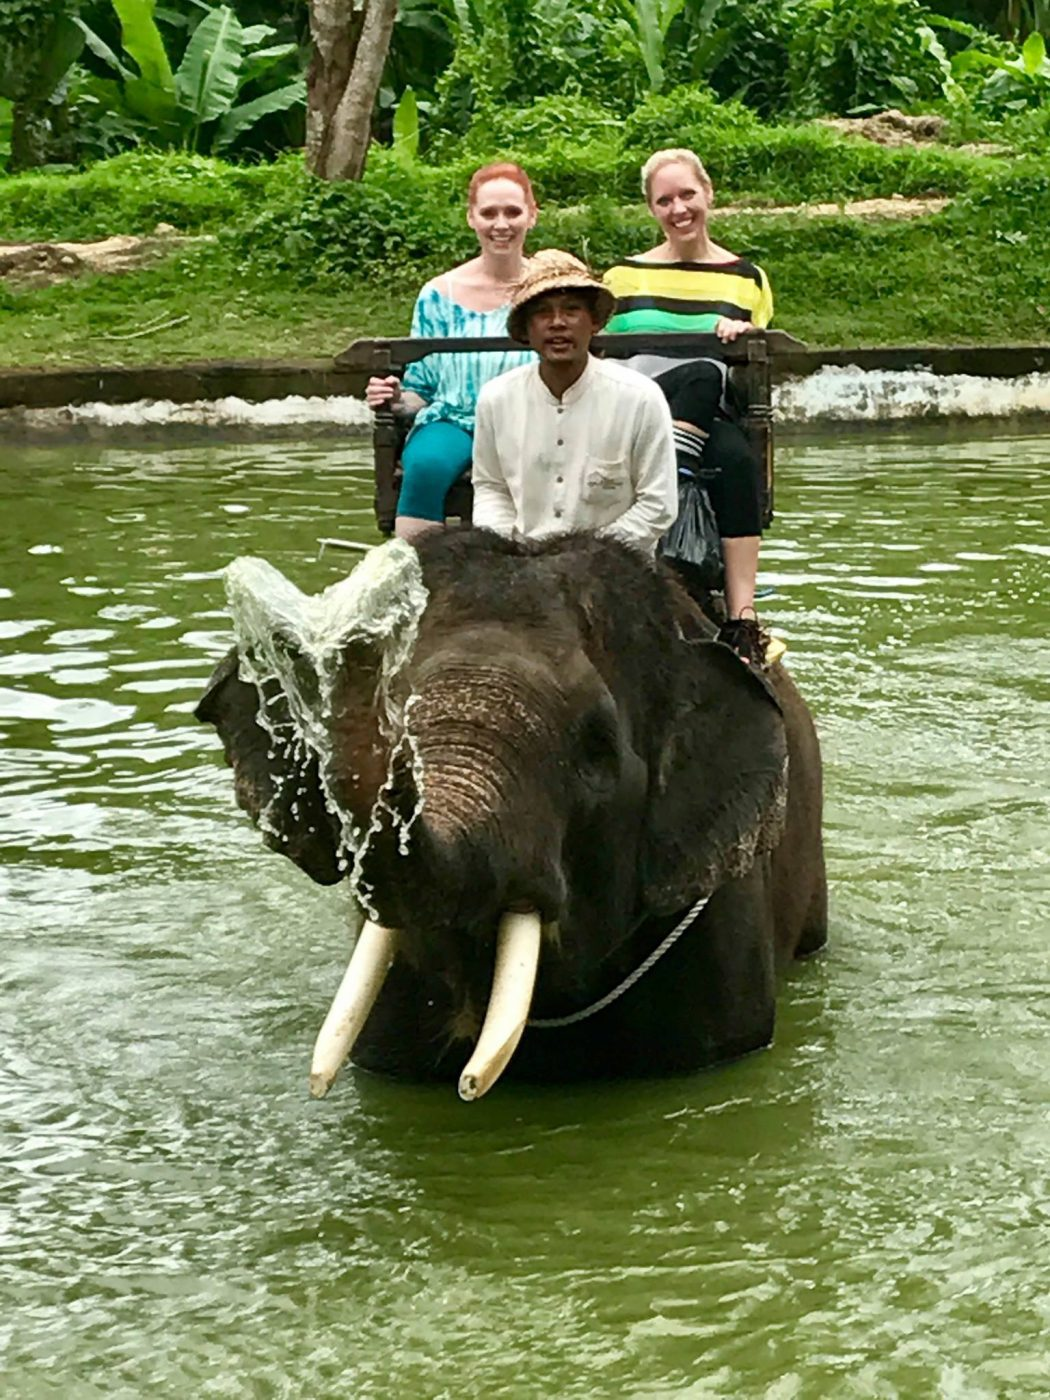 Women riding an elephant in beautiful Bali. On the Bliss Sightseers Package indulge your sightseeing bliss with our personal driver to take you around and show you the highlights of Bali